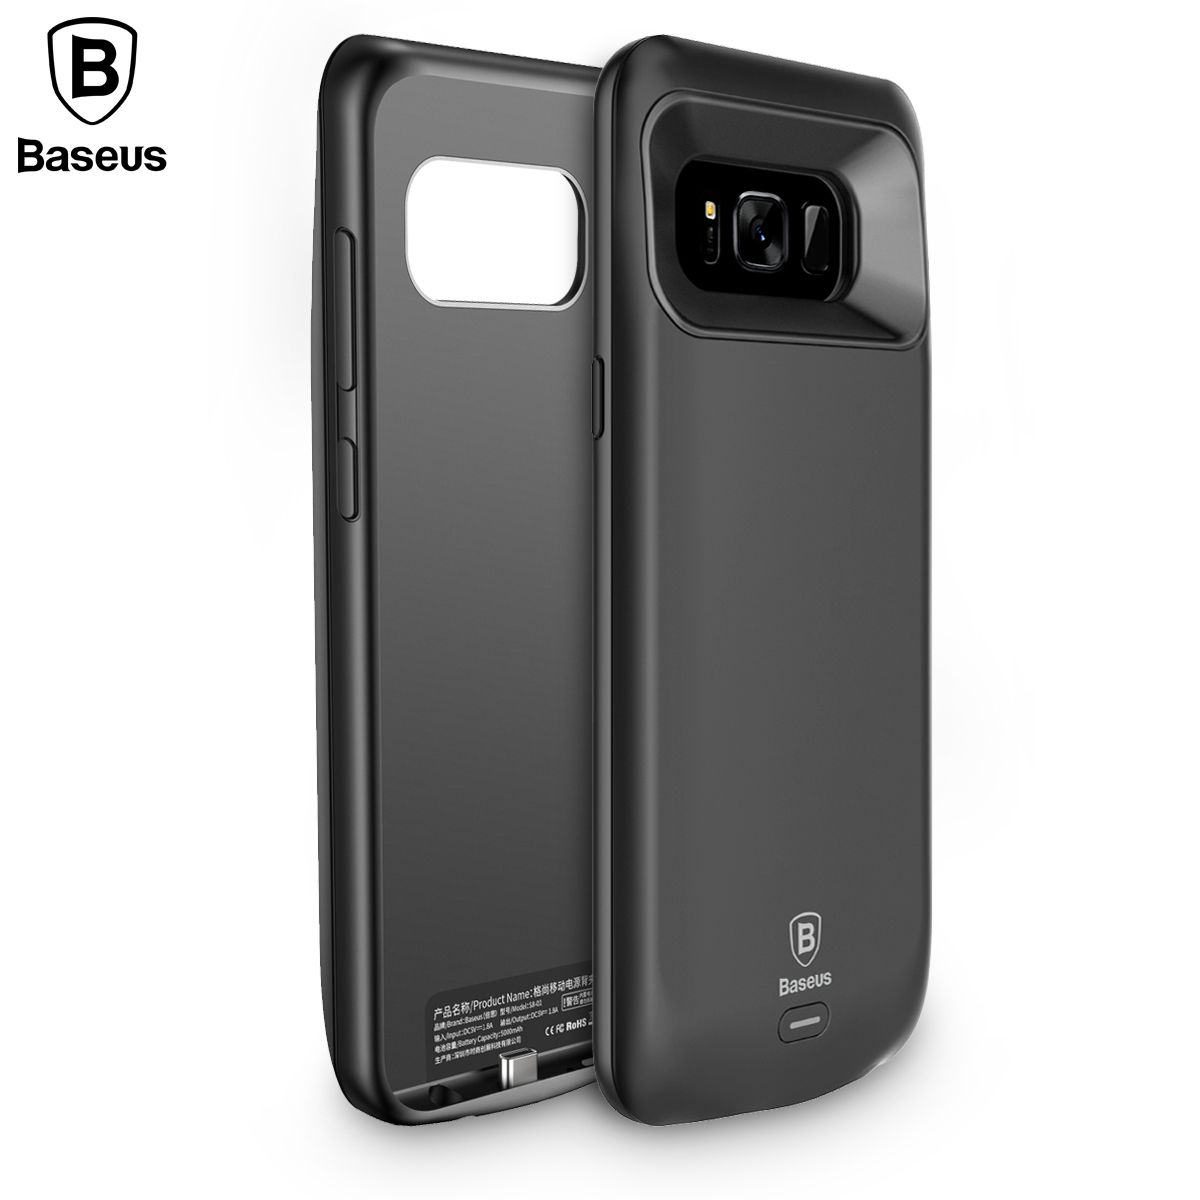 Baseus Battery Charger Case For Samsung Galaxy S8 Plus 5000mAh/5500mAh Backup External Battery Power Bank Charging Cover Case